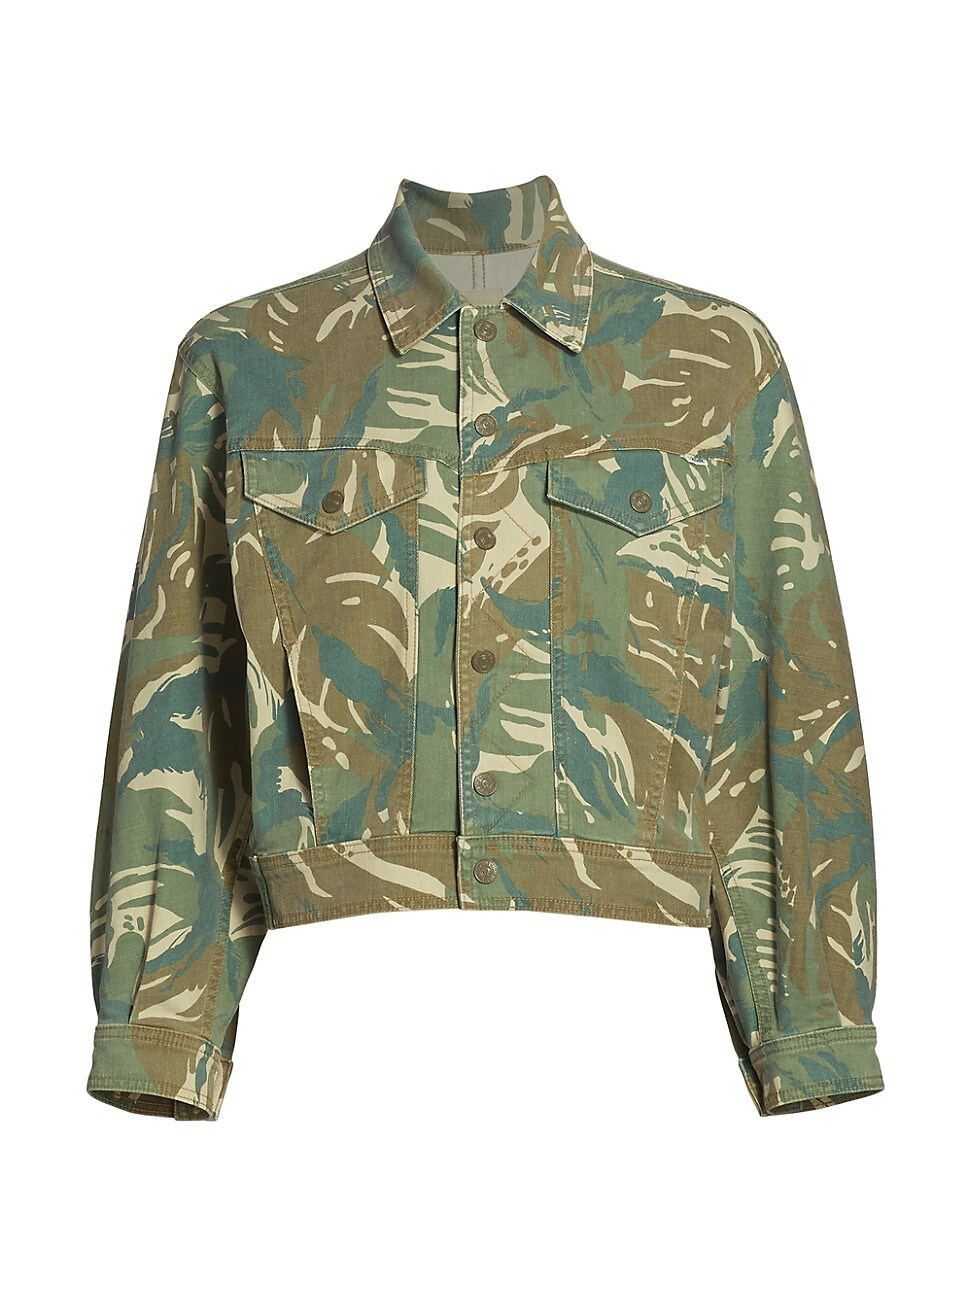 Mother WOMEN'S THE FLY AWAY JACKET